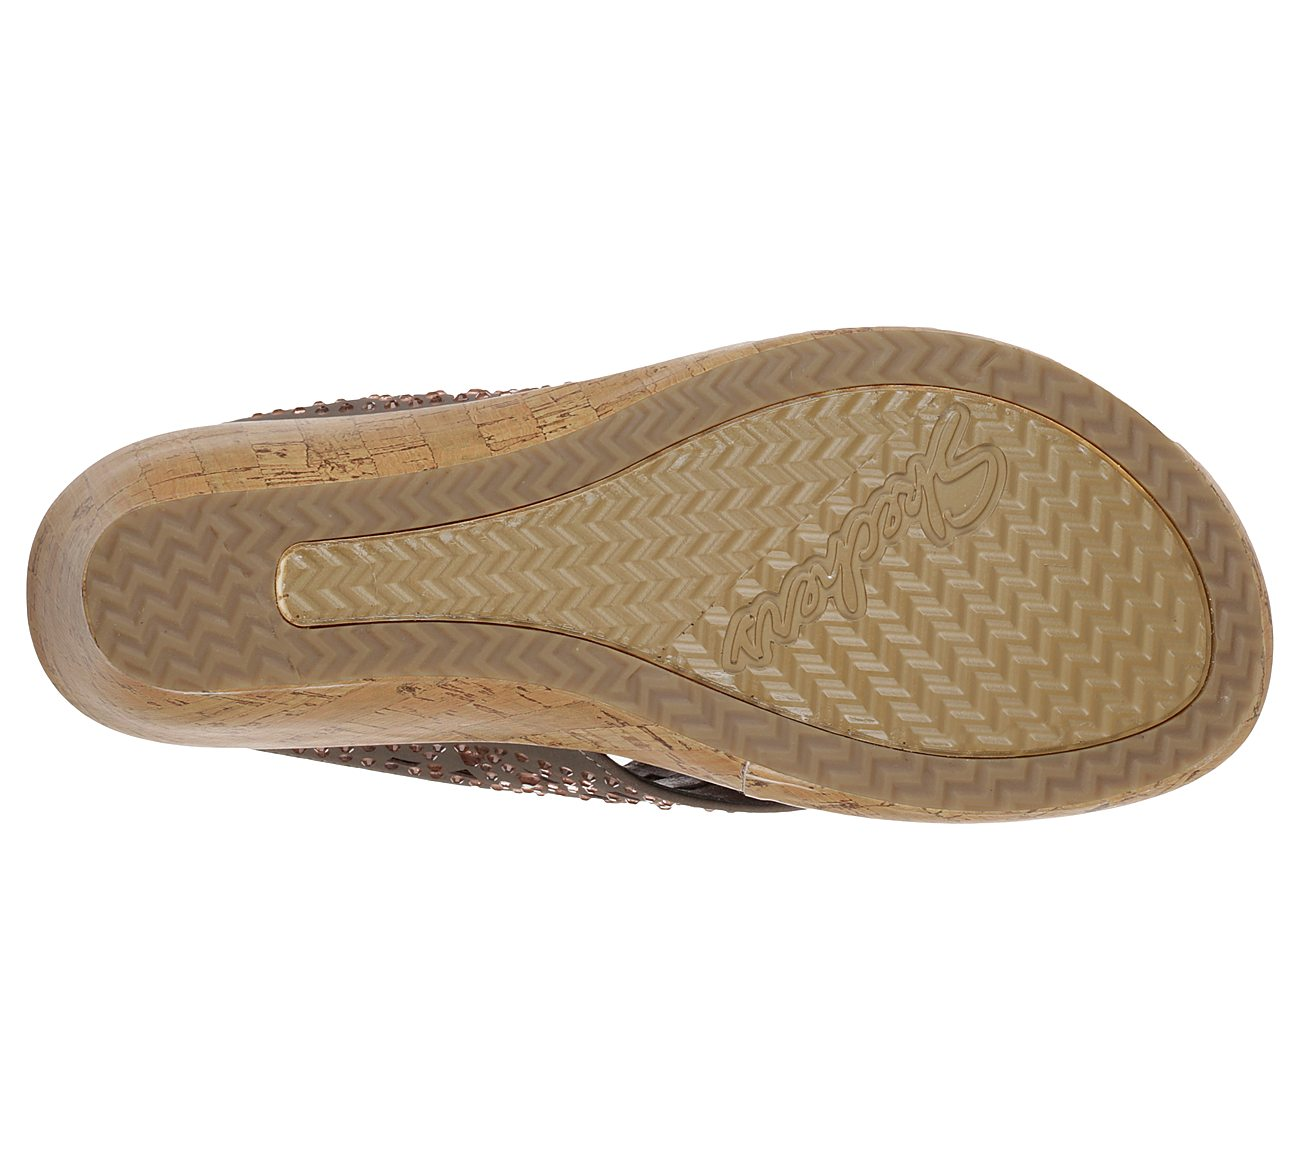 09ad431bac971e Buy SKECHERS Beverlee - Dazzled Thong Sandals Shoes only  70.00